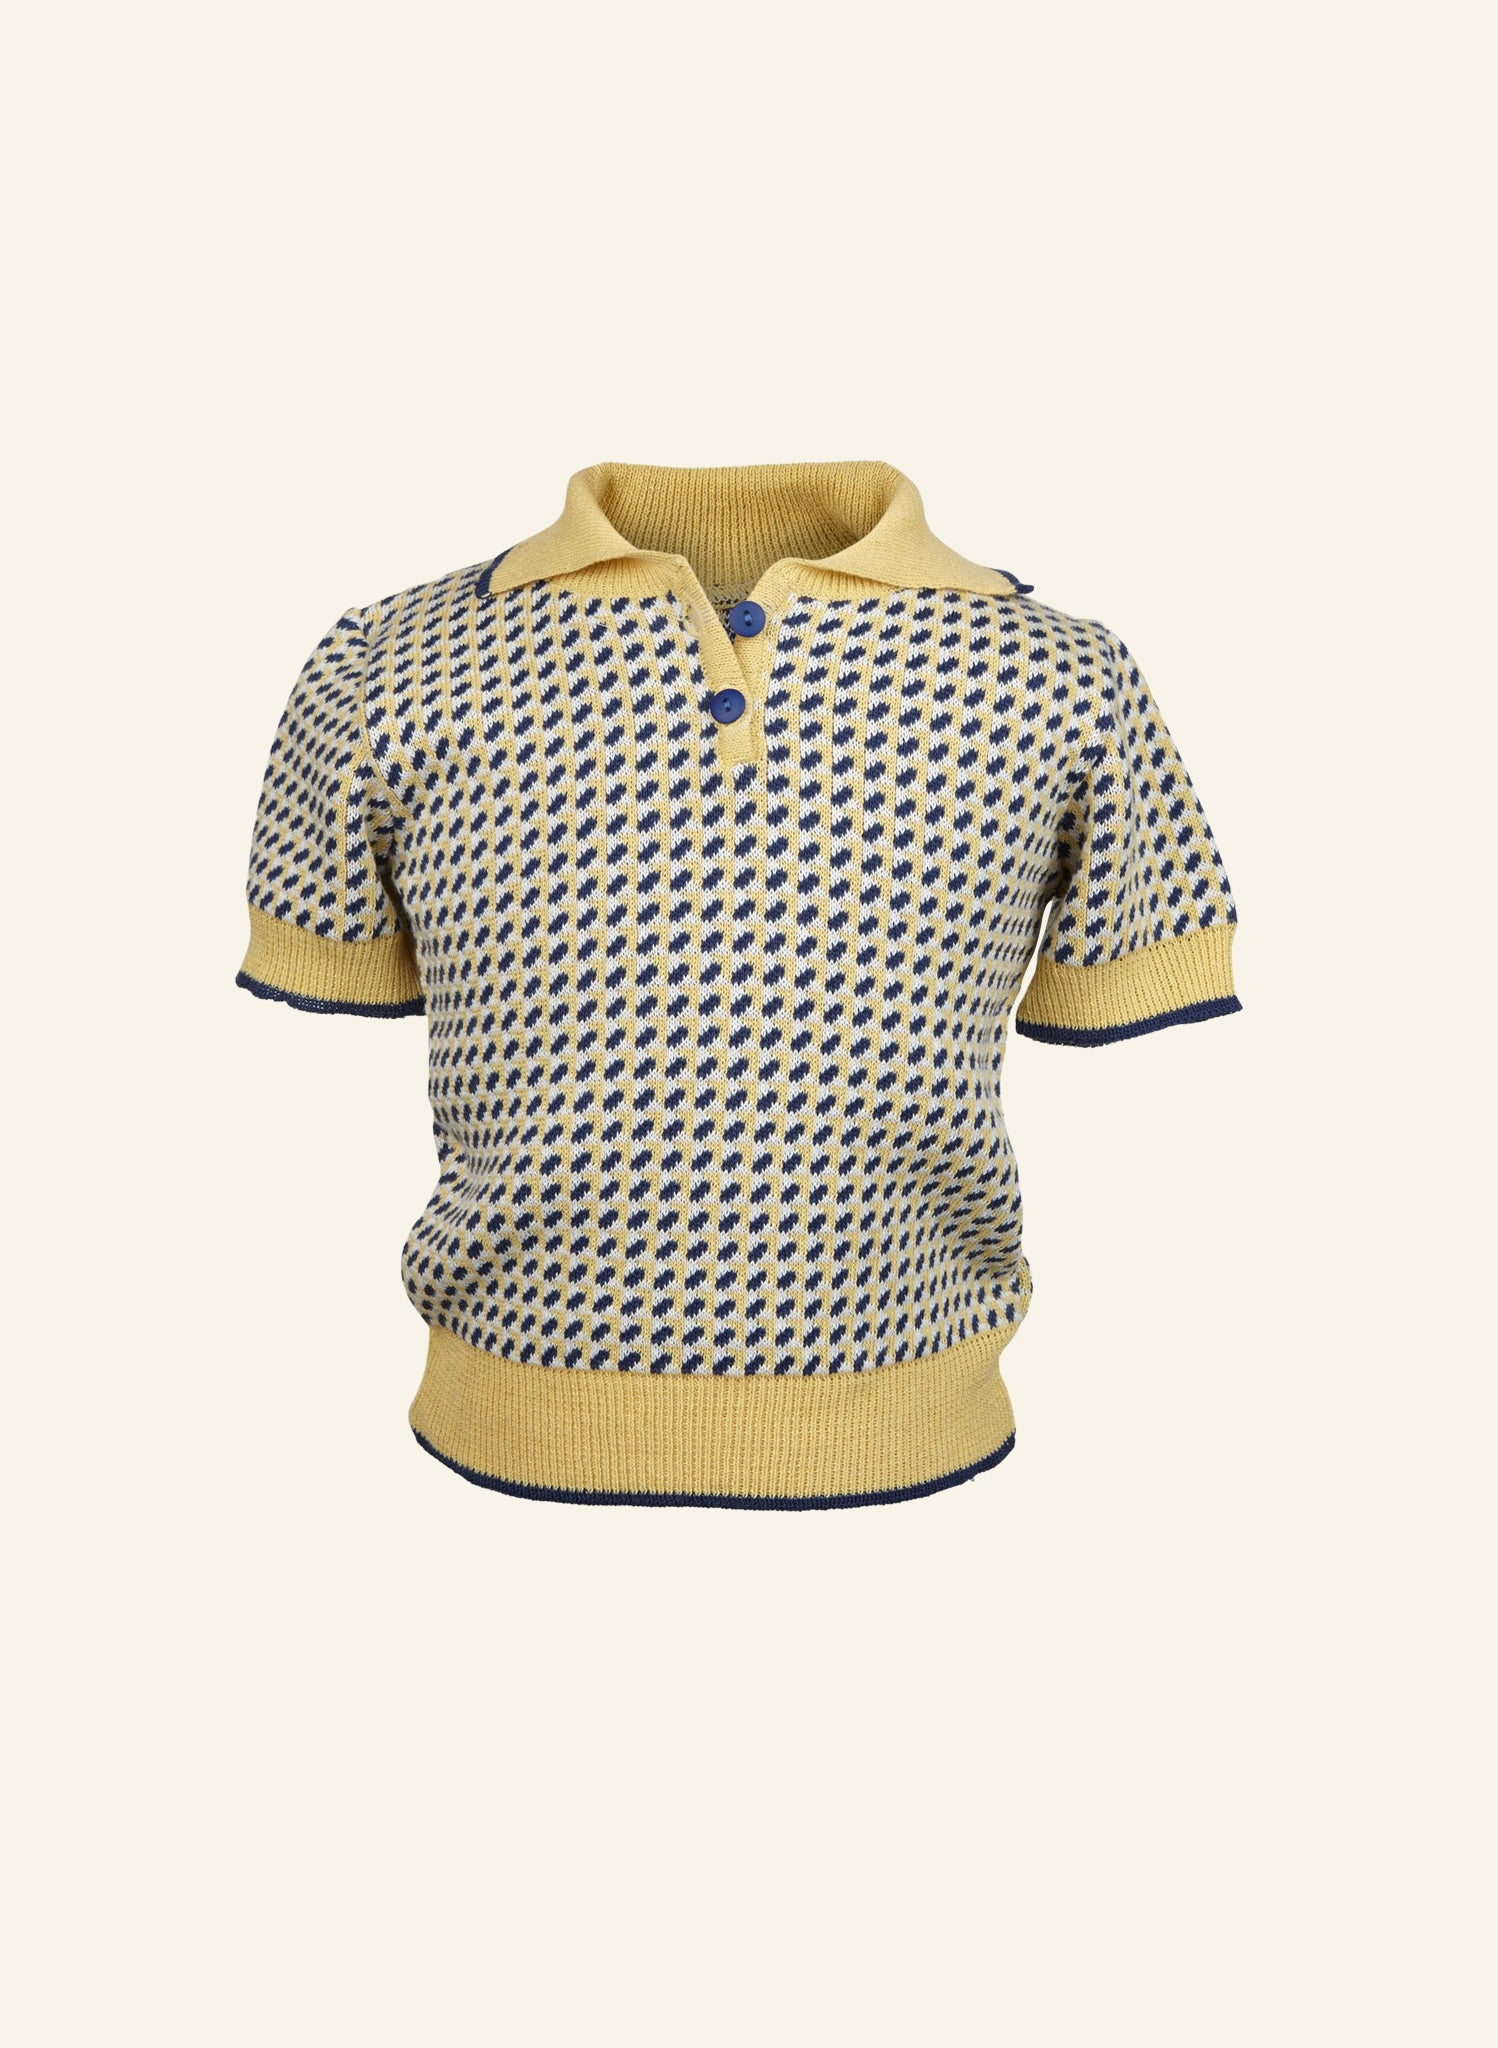 Children's Top - Lemon/Navy Fly Away